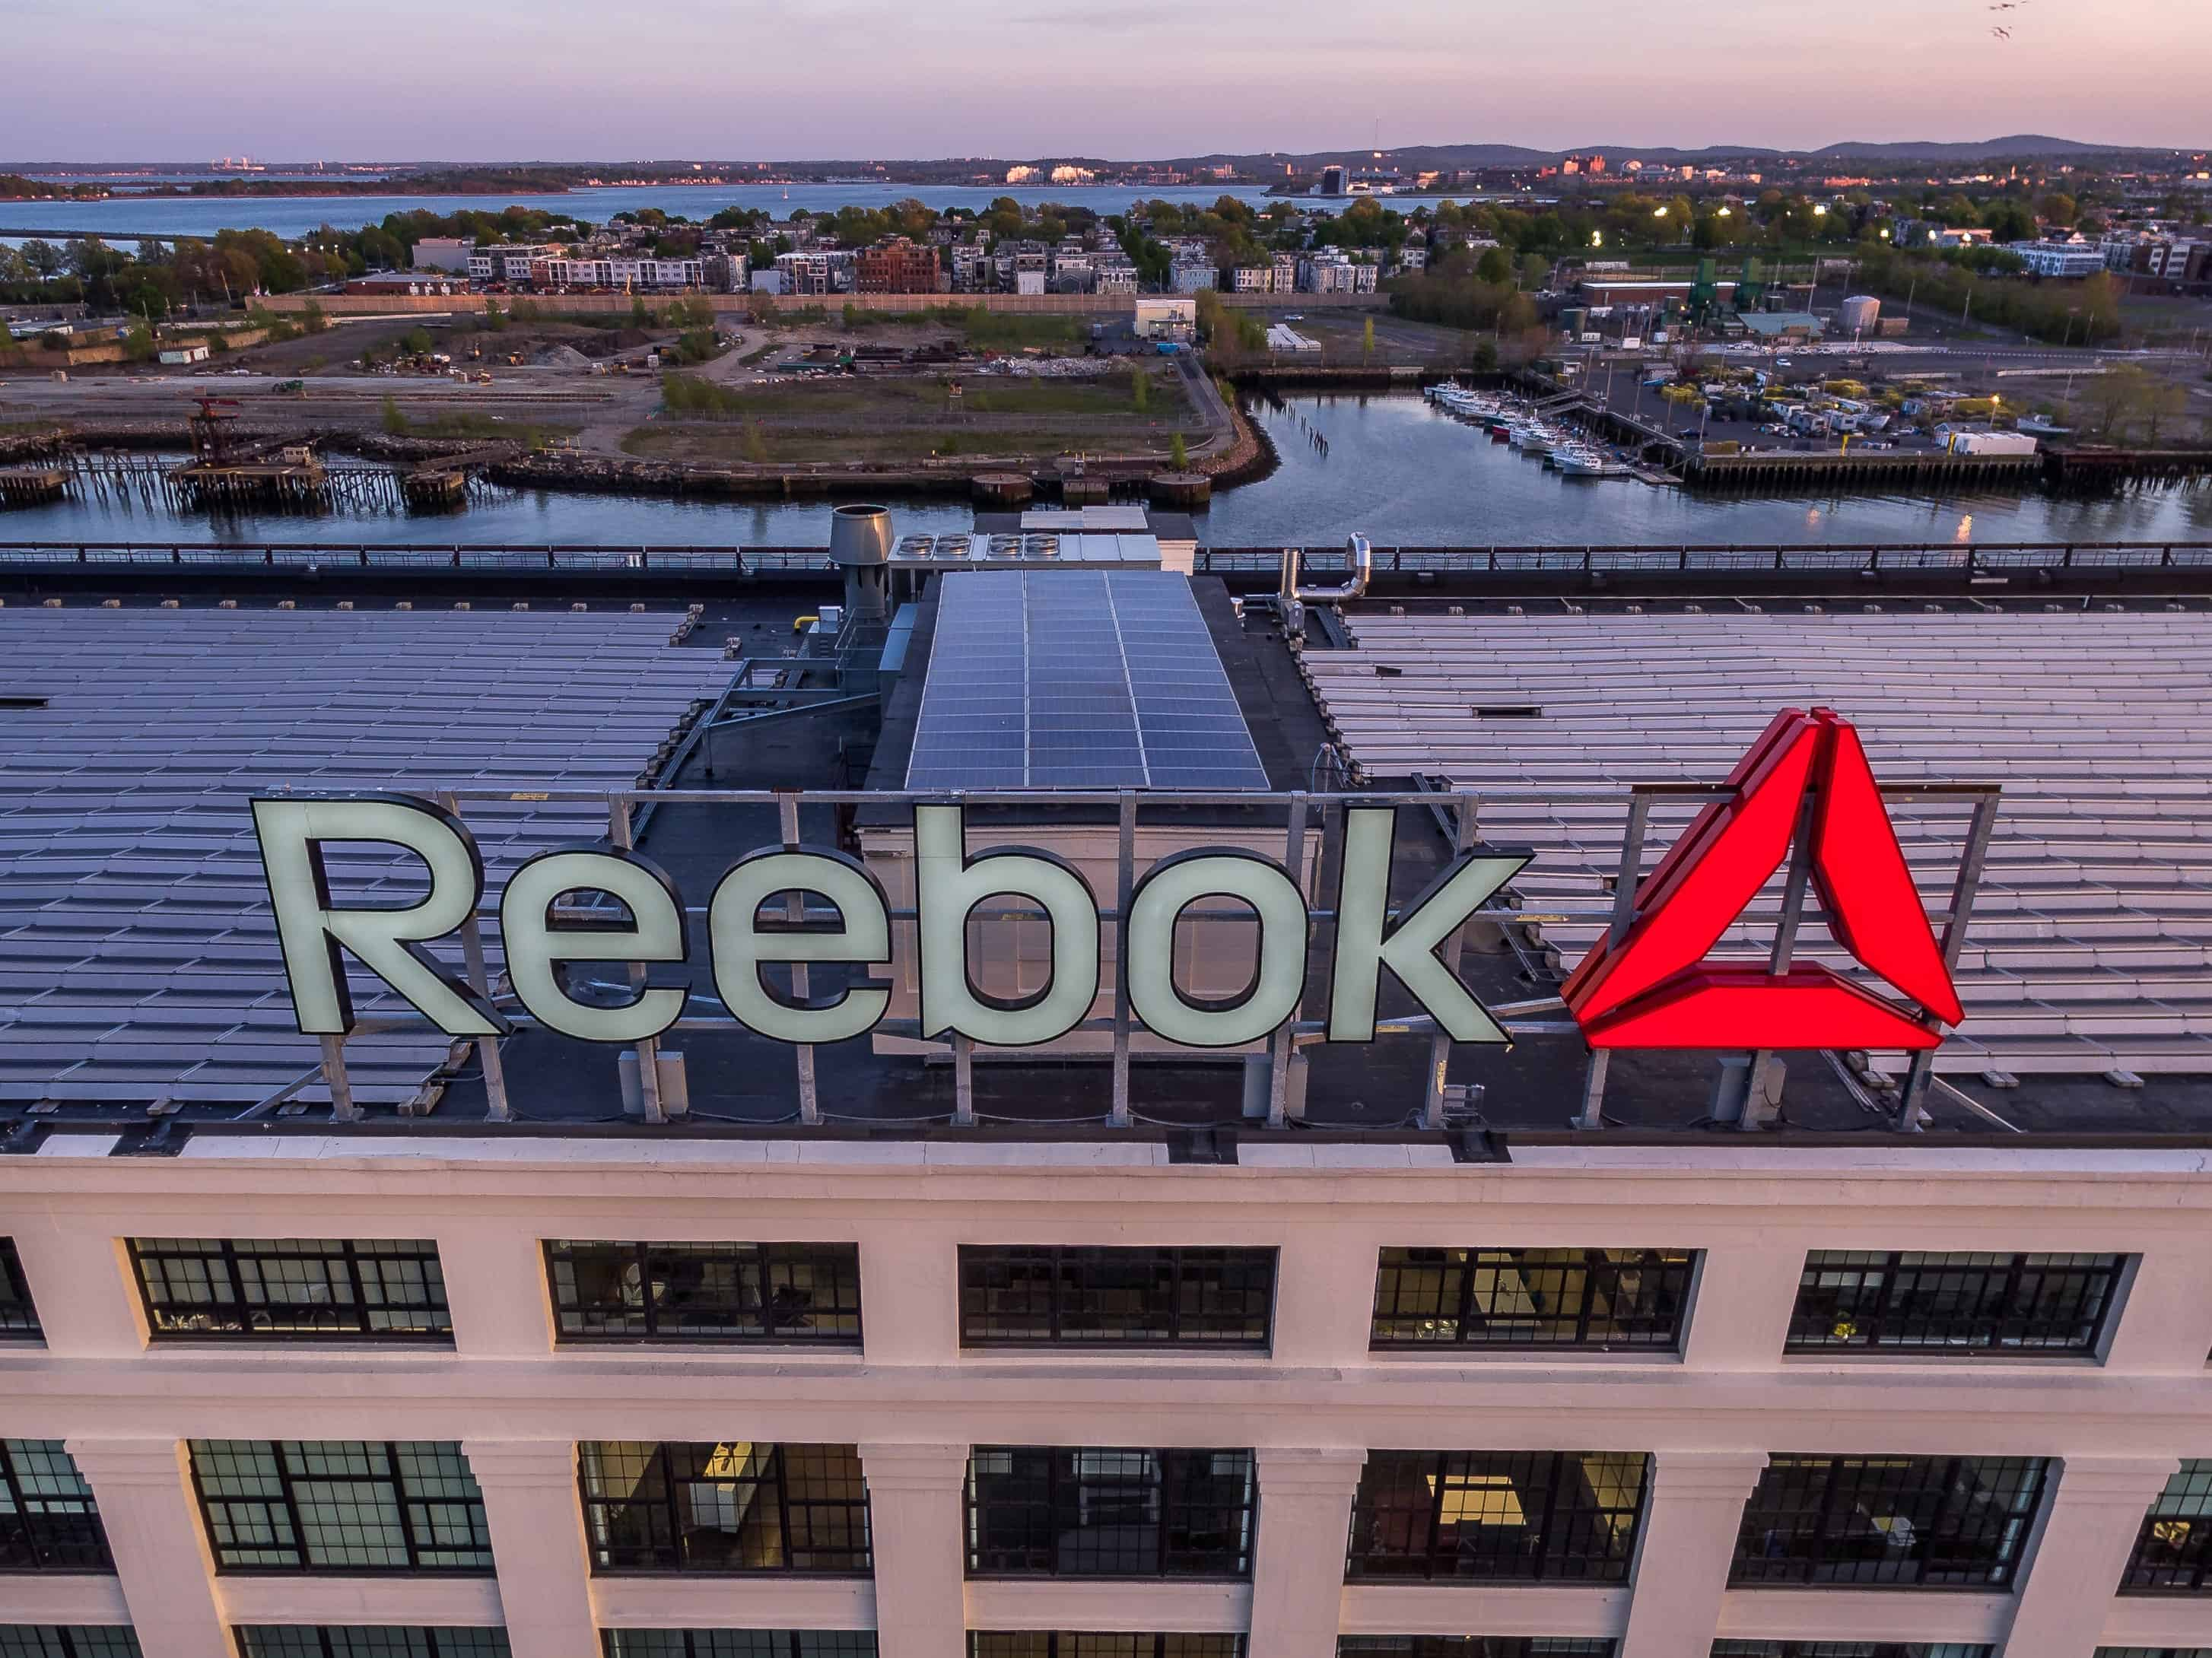 Reebok Headquarters